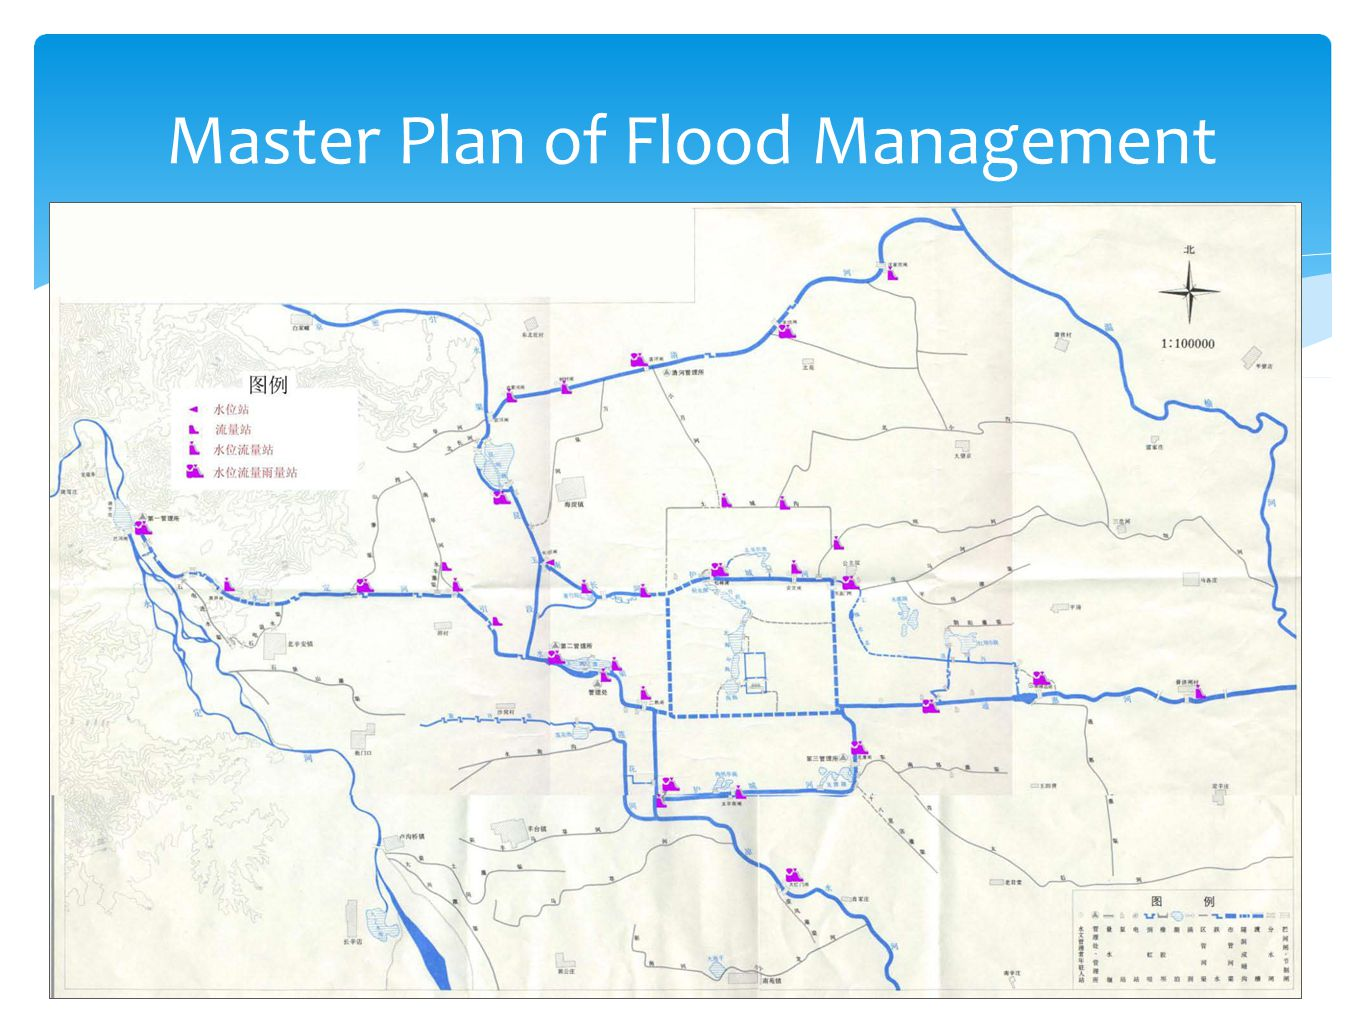 Master Plan of Flood Management